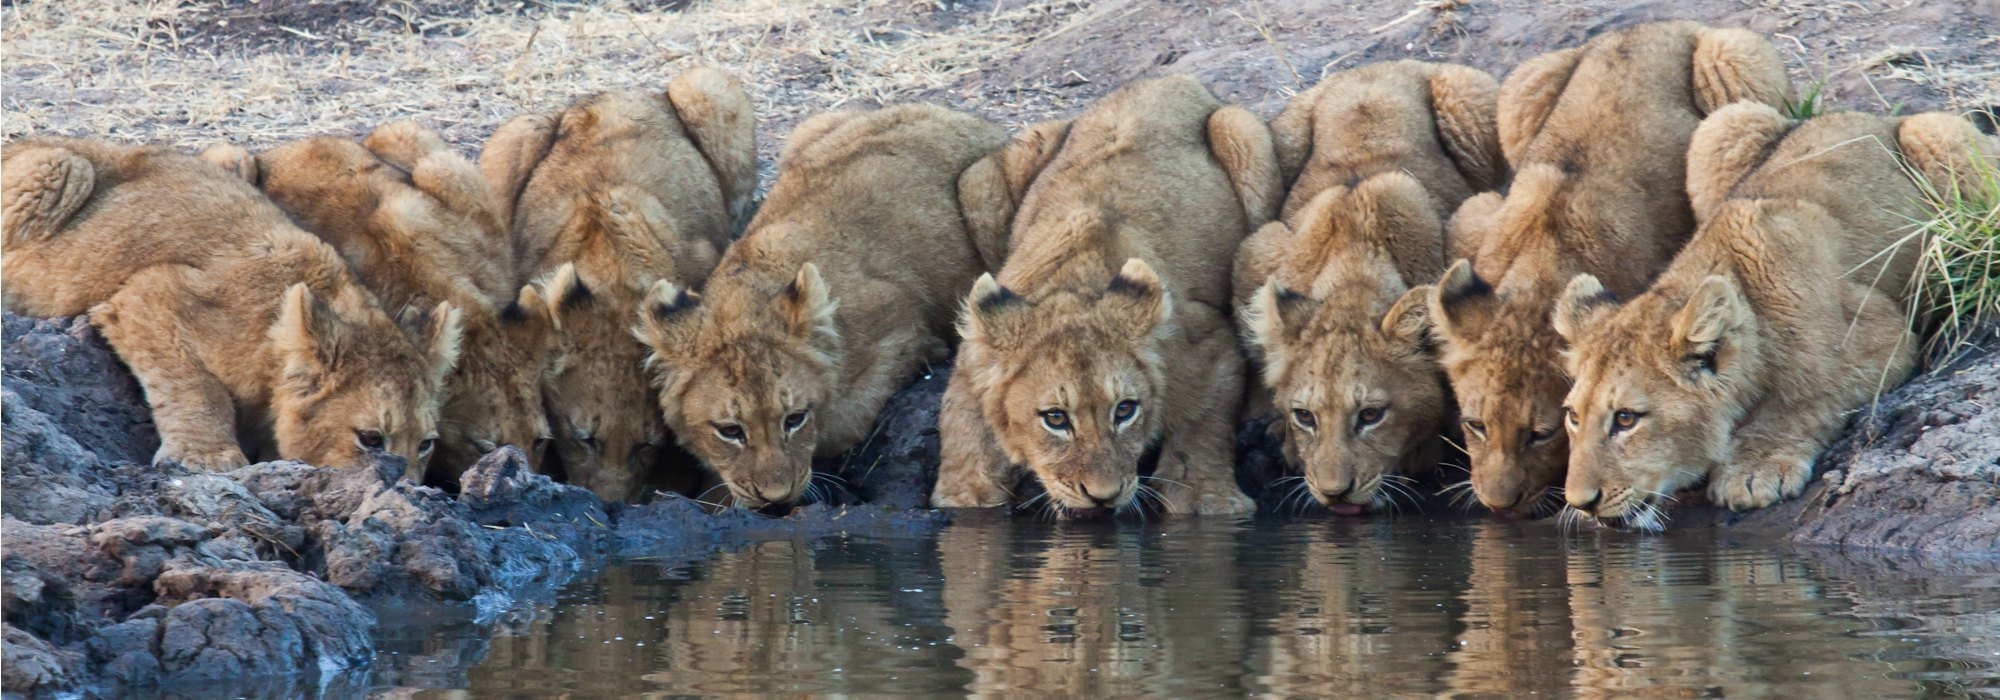 Family Fun In South Africa 2018 Amp 2019 Lion World Travel